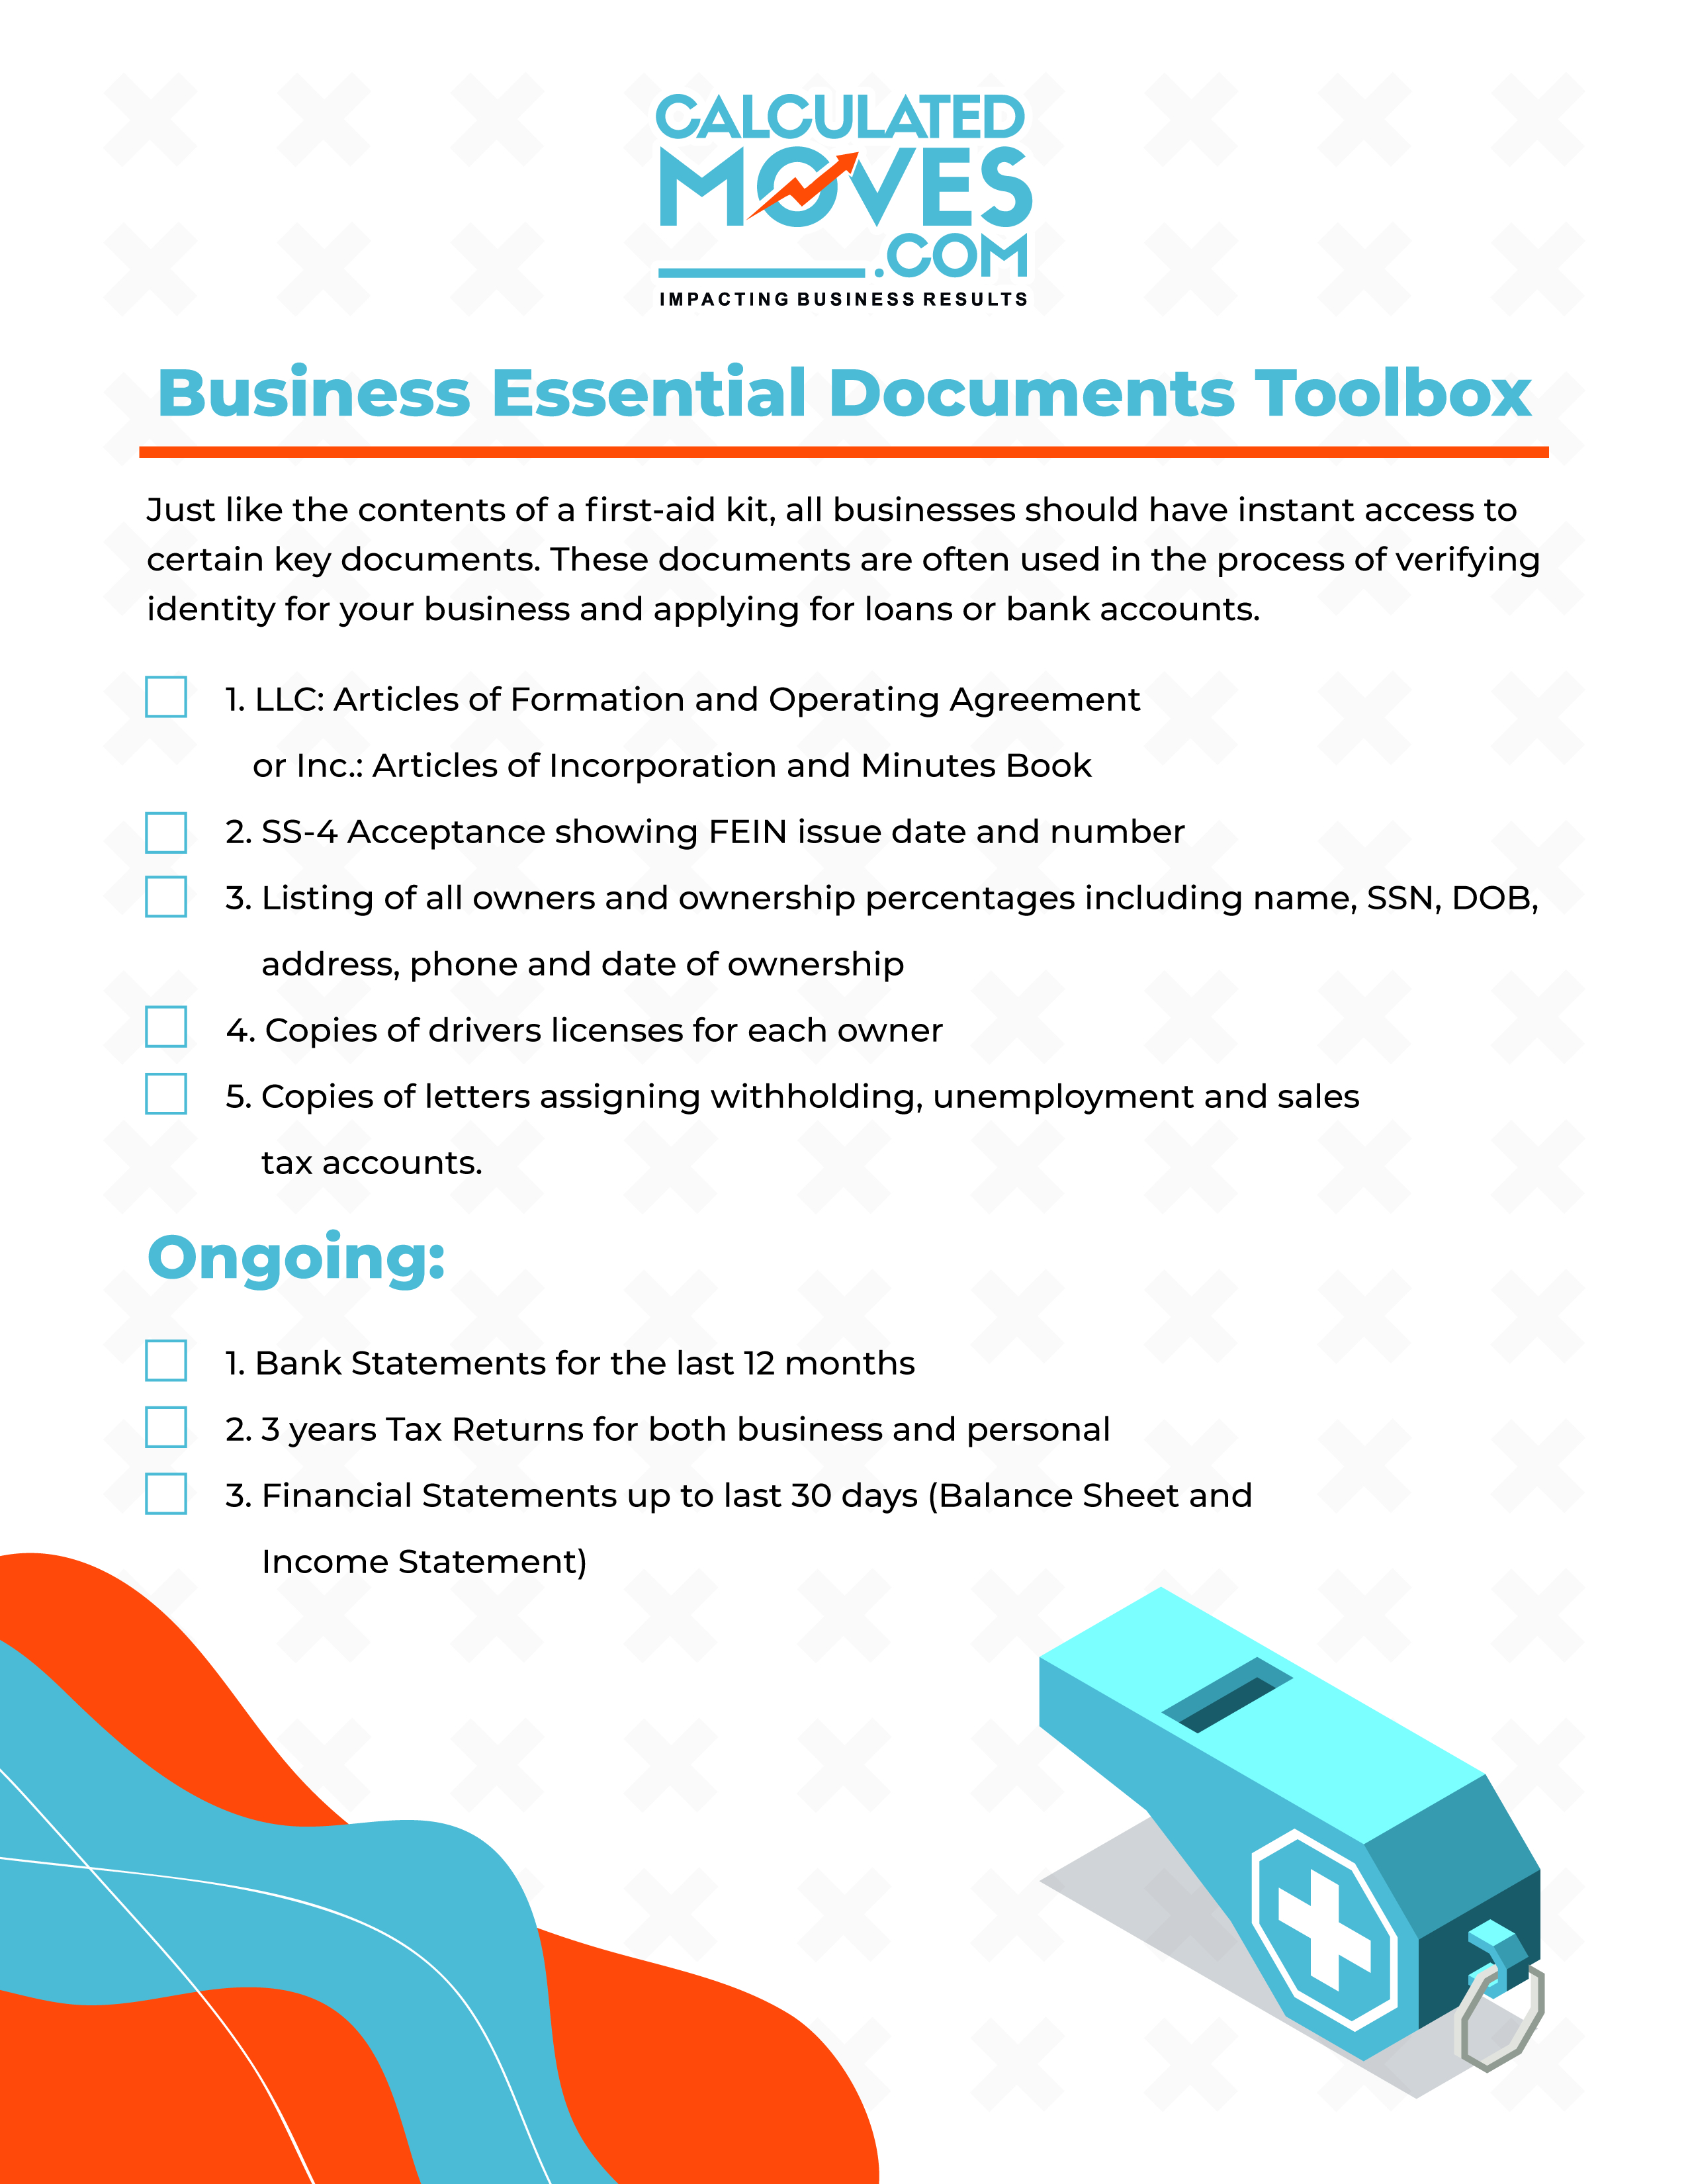 Business Essential Documents Toolbox